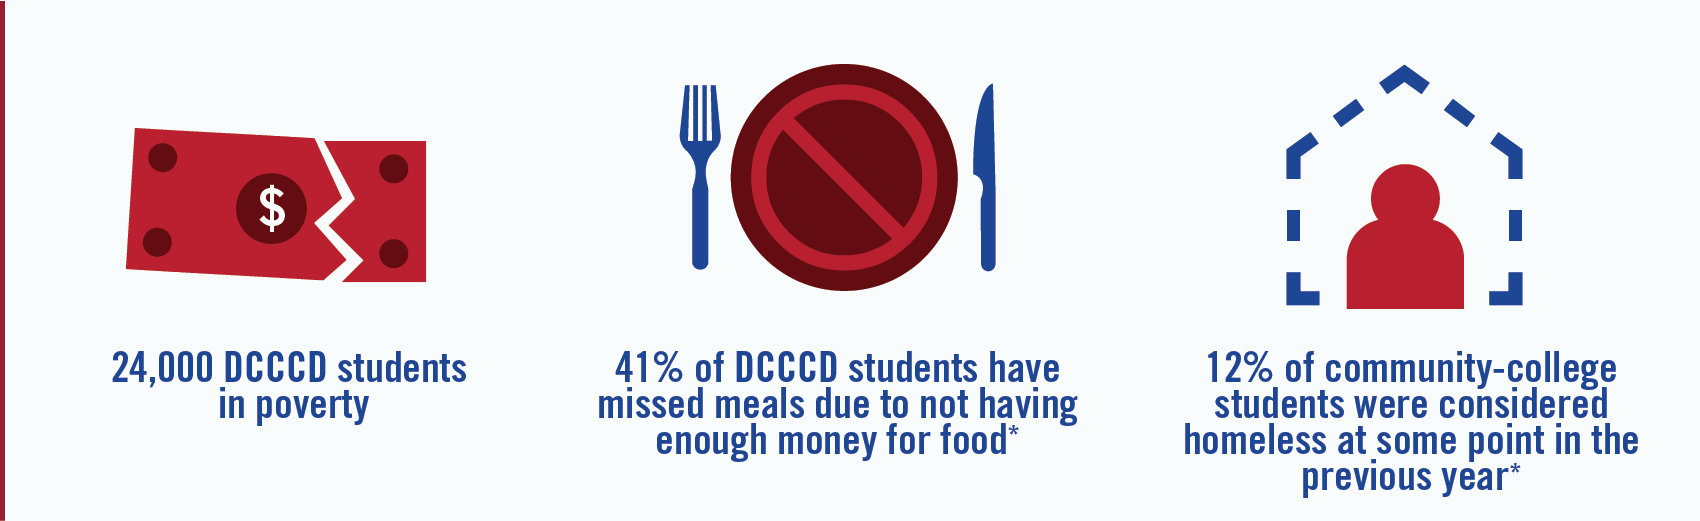 41% of DCCCD students have missed meals due to not having enough money for food; 12% of community-college students were considered homeless at some point in the previous year